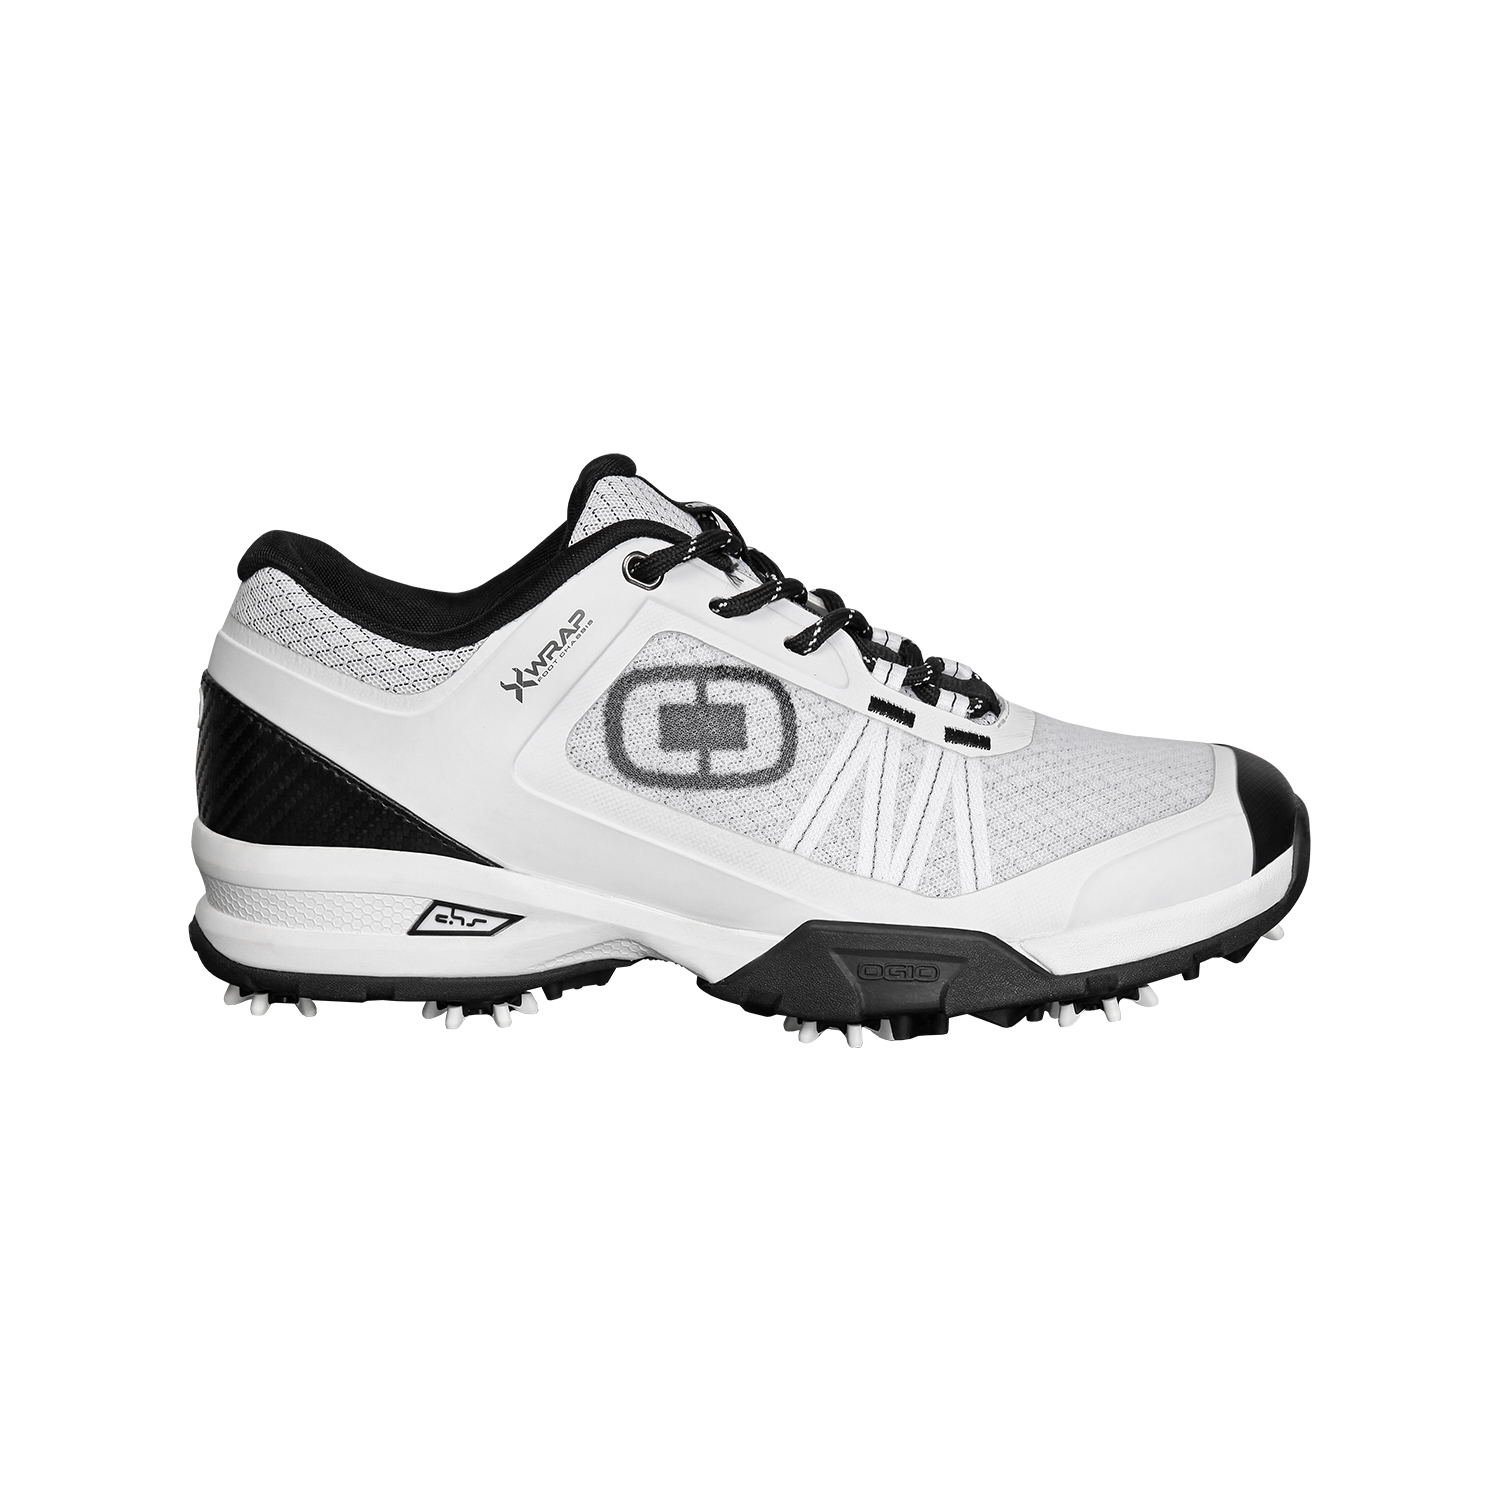 new ogio 2016 s sport spiked golf shoes size